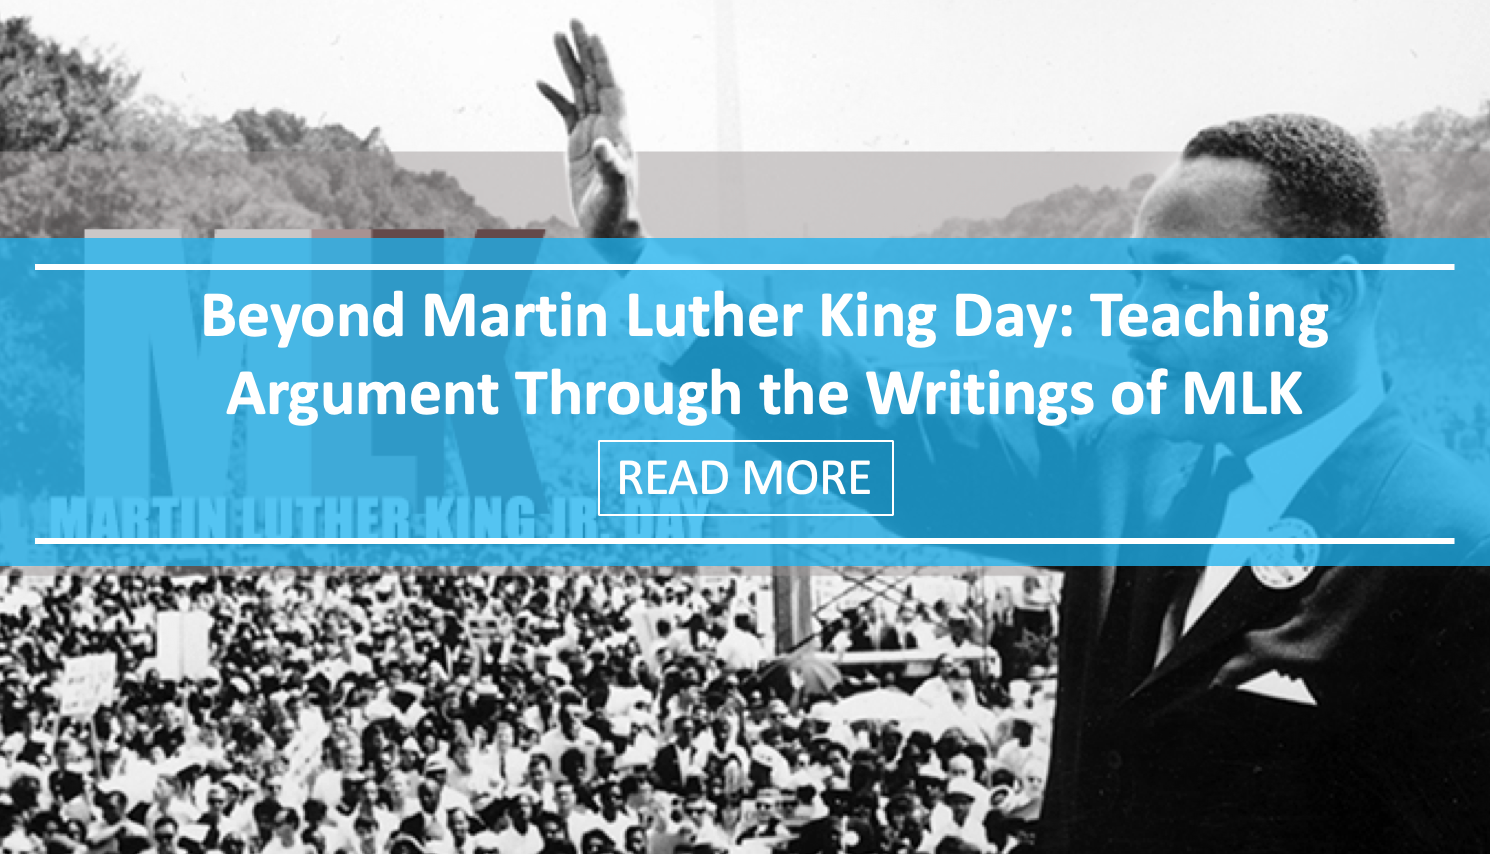 Beyond Martin Luther King Day: Teaching Argument Through the Writings of Martin Luther King